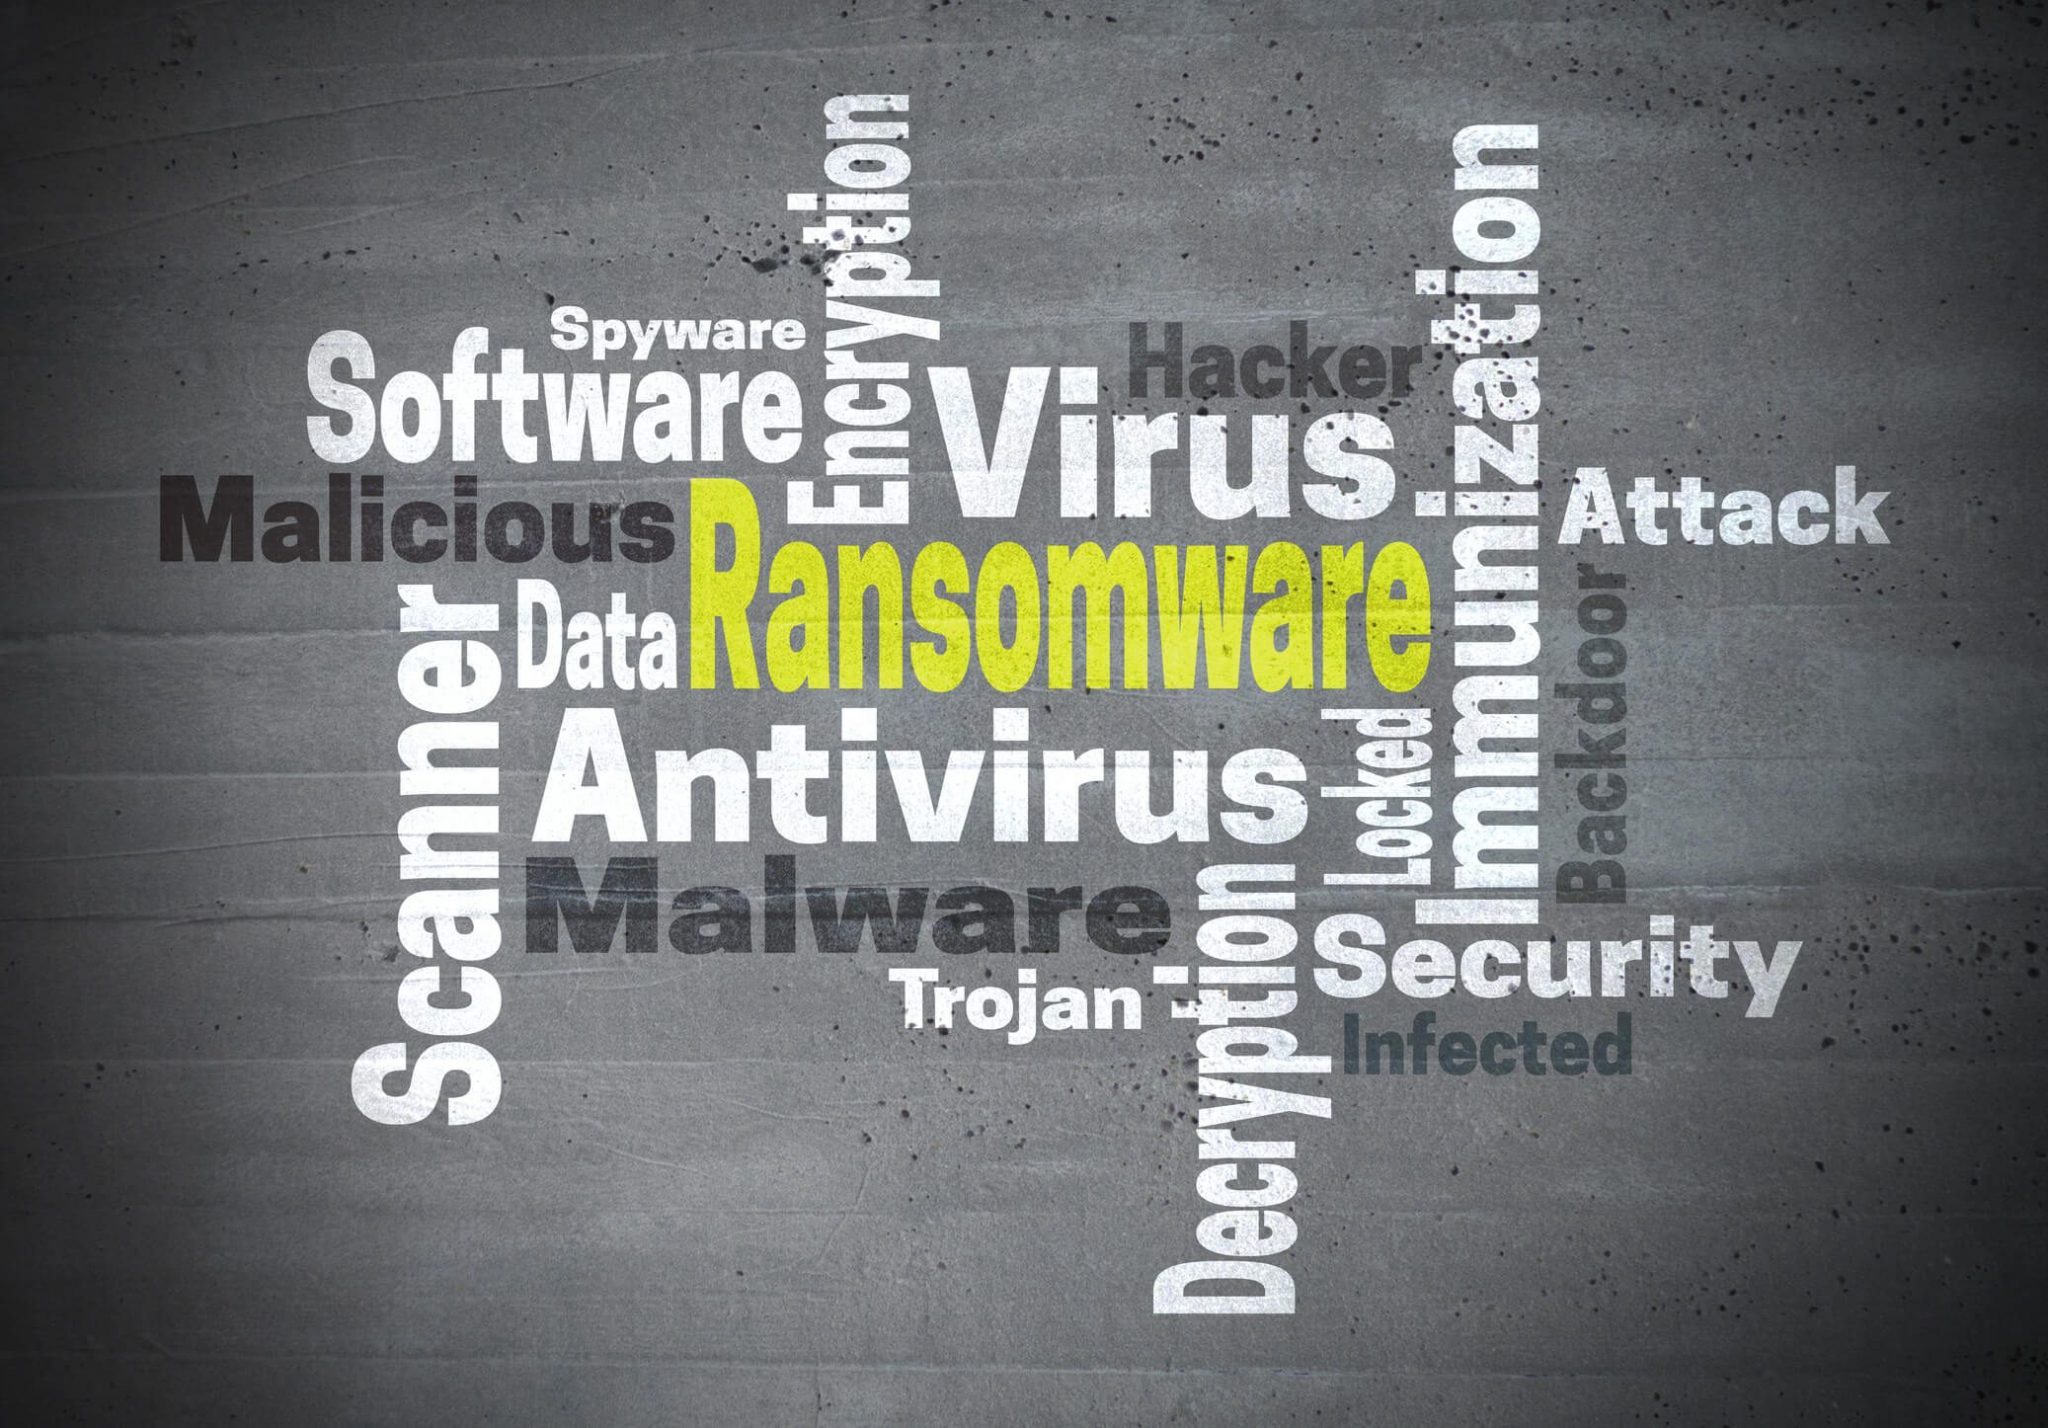 Ransomware word cloud image